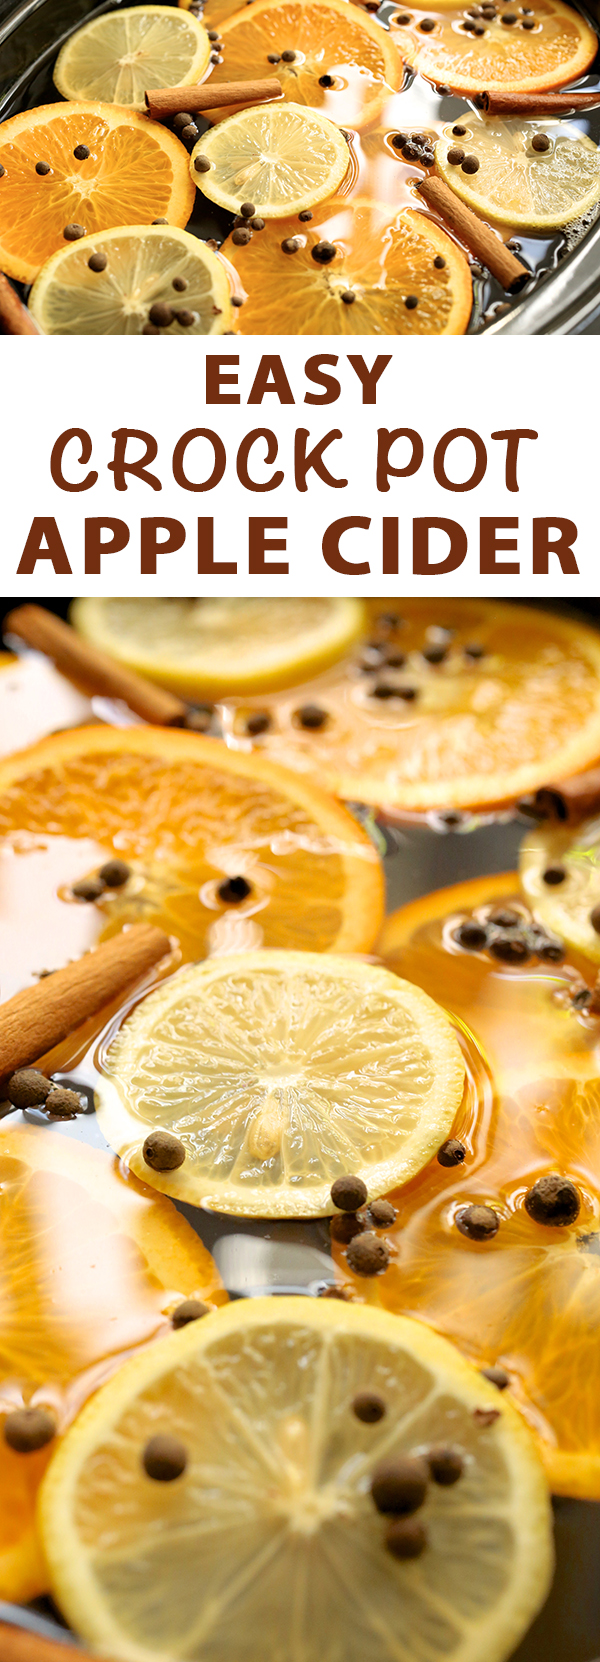 Easy Crock Pot Apple Cider